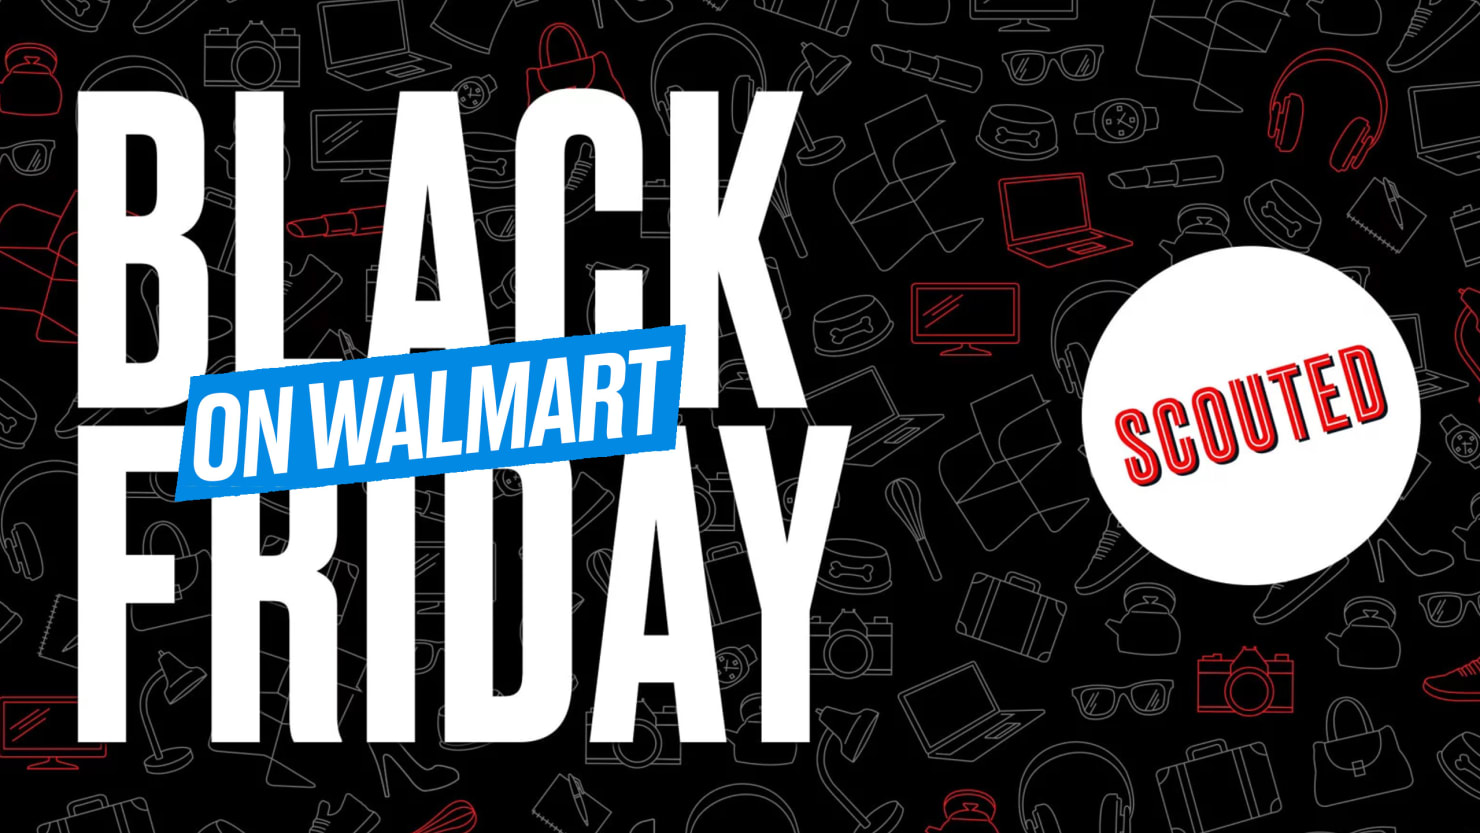 Scouted: We Picked the Best Black Friday Deals from Walmart For You